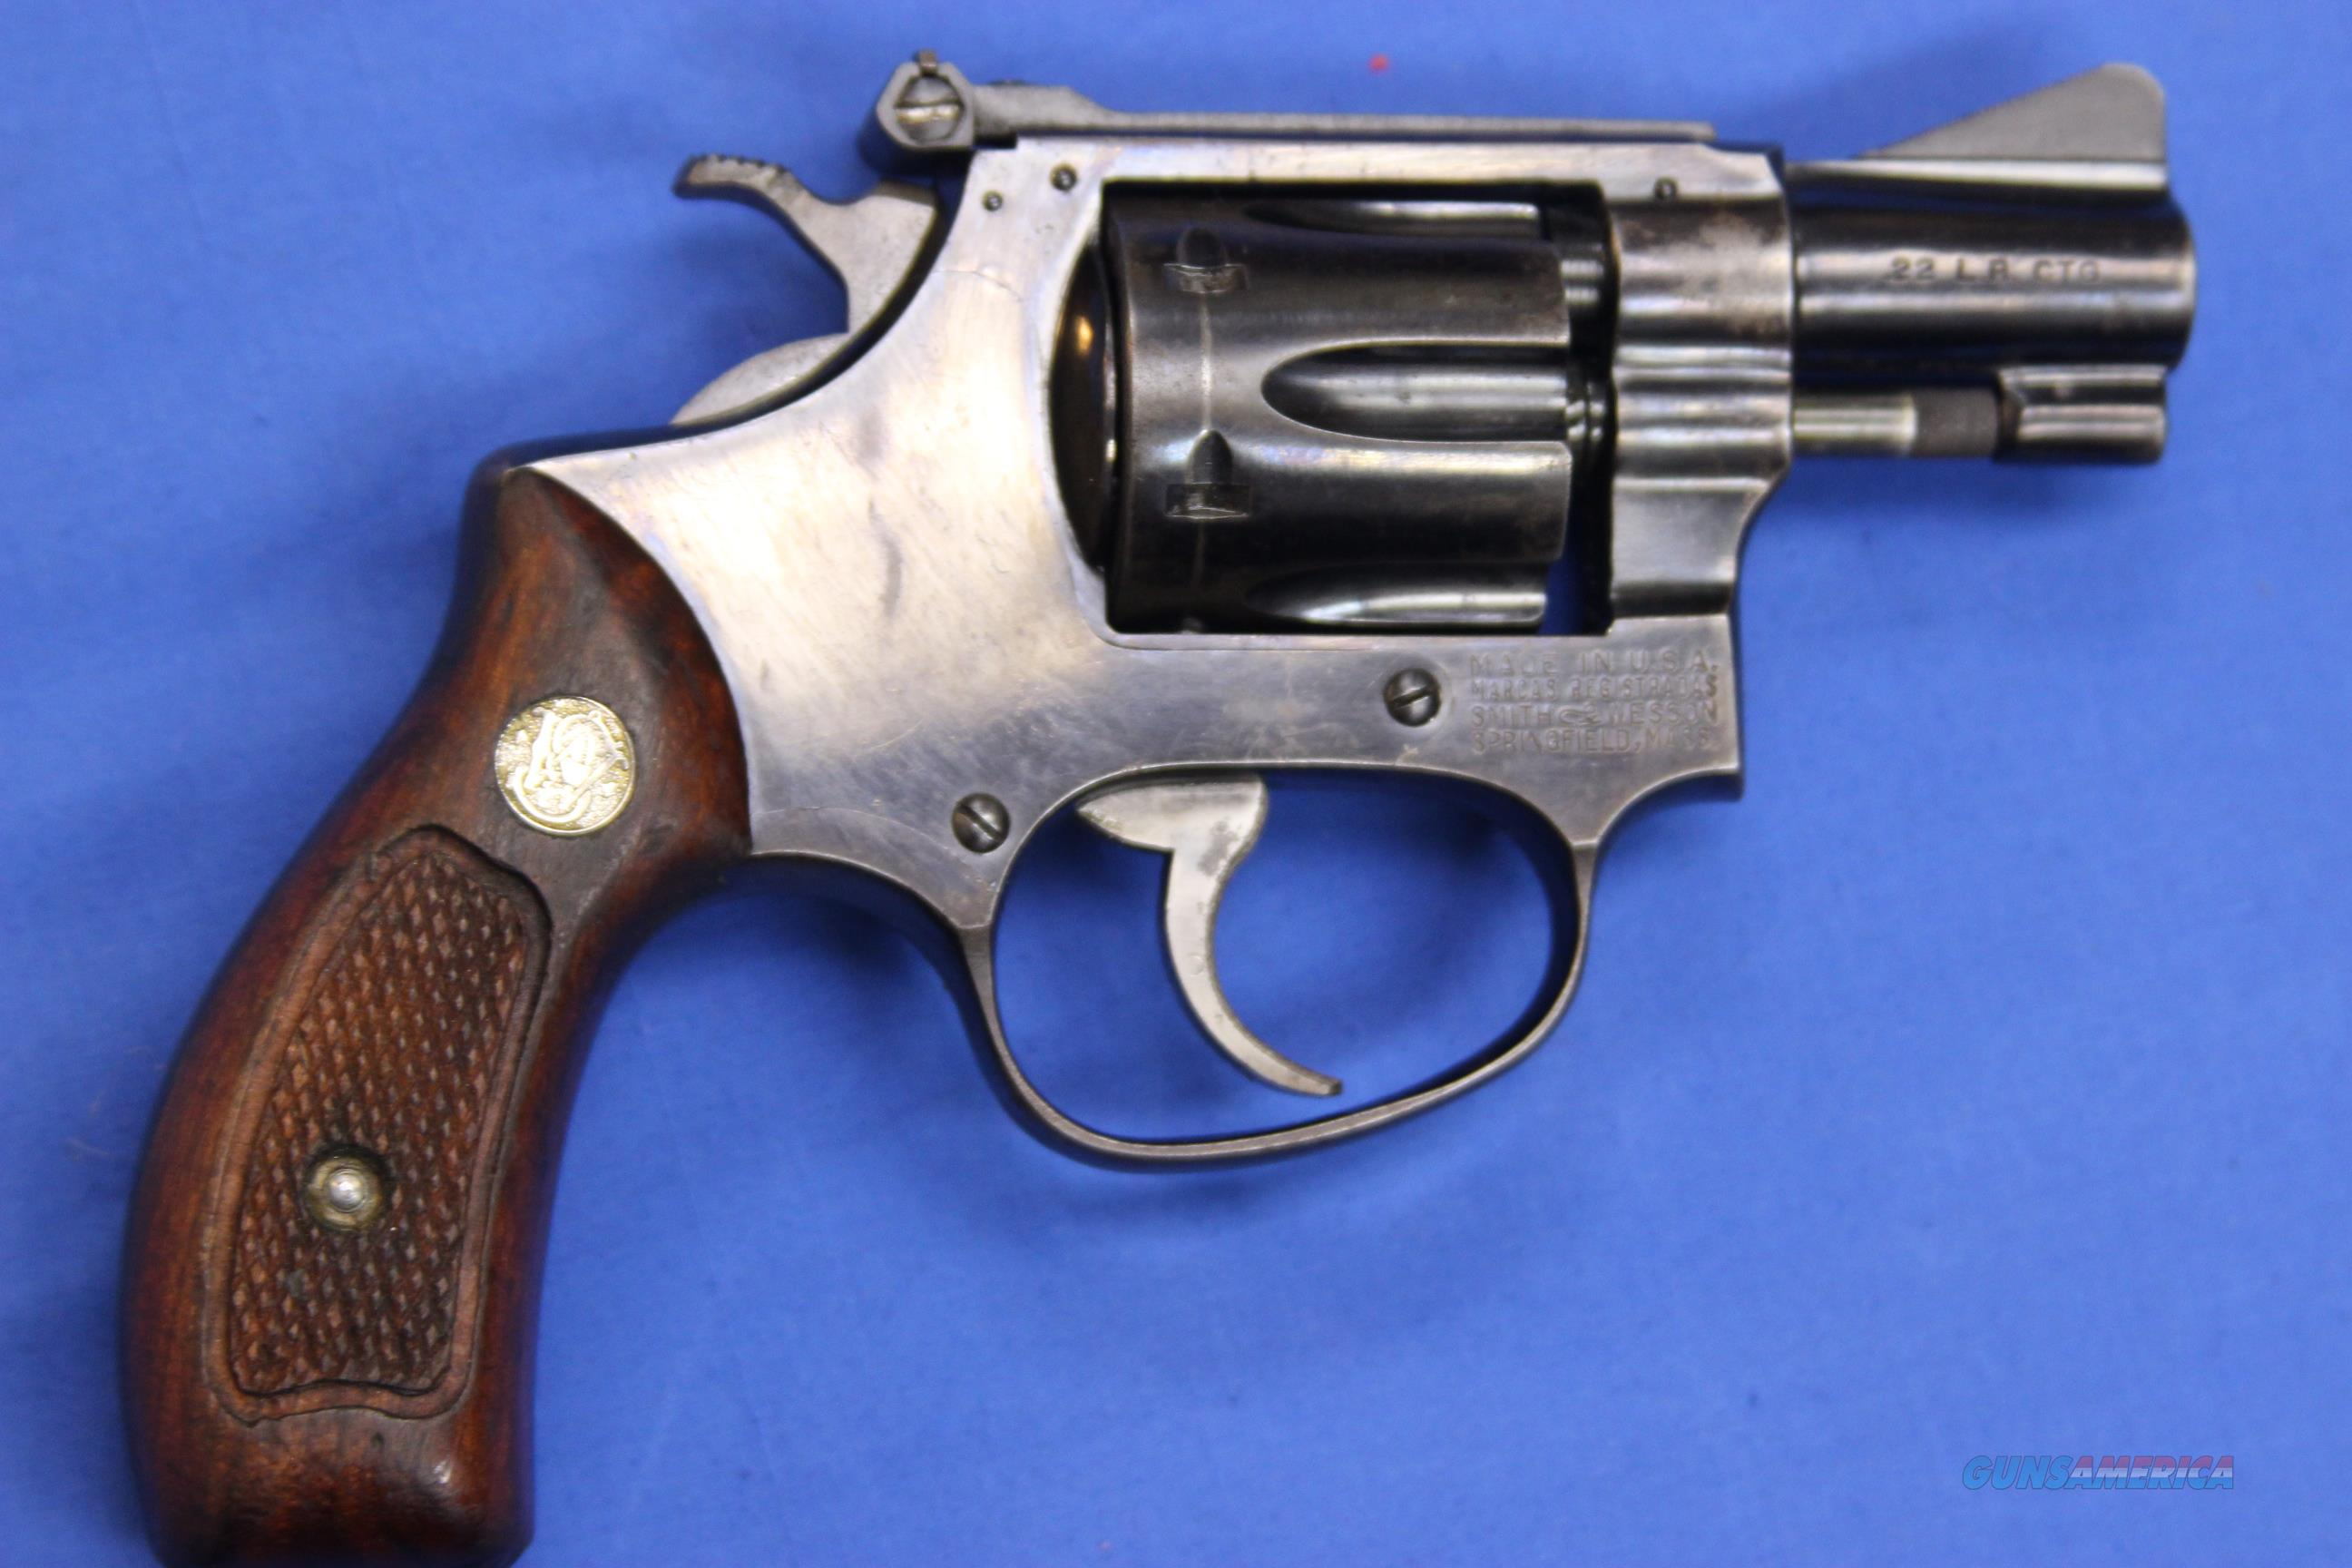 SMITH & WESSON MODEL 34 .22 LONG RIFLE   Guns > Pistols > Smith & Wesson Revolvers > Pre-1945